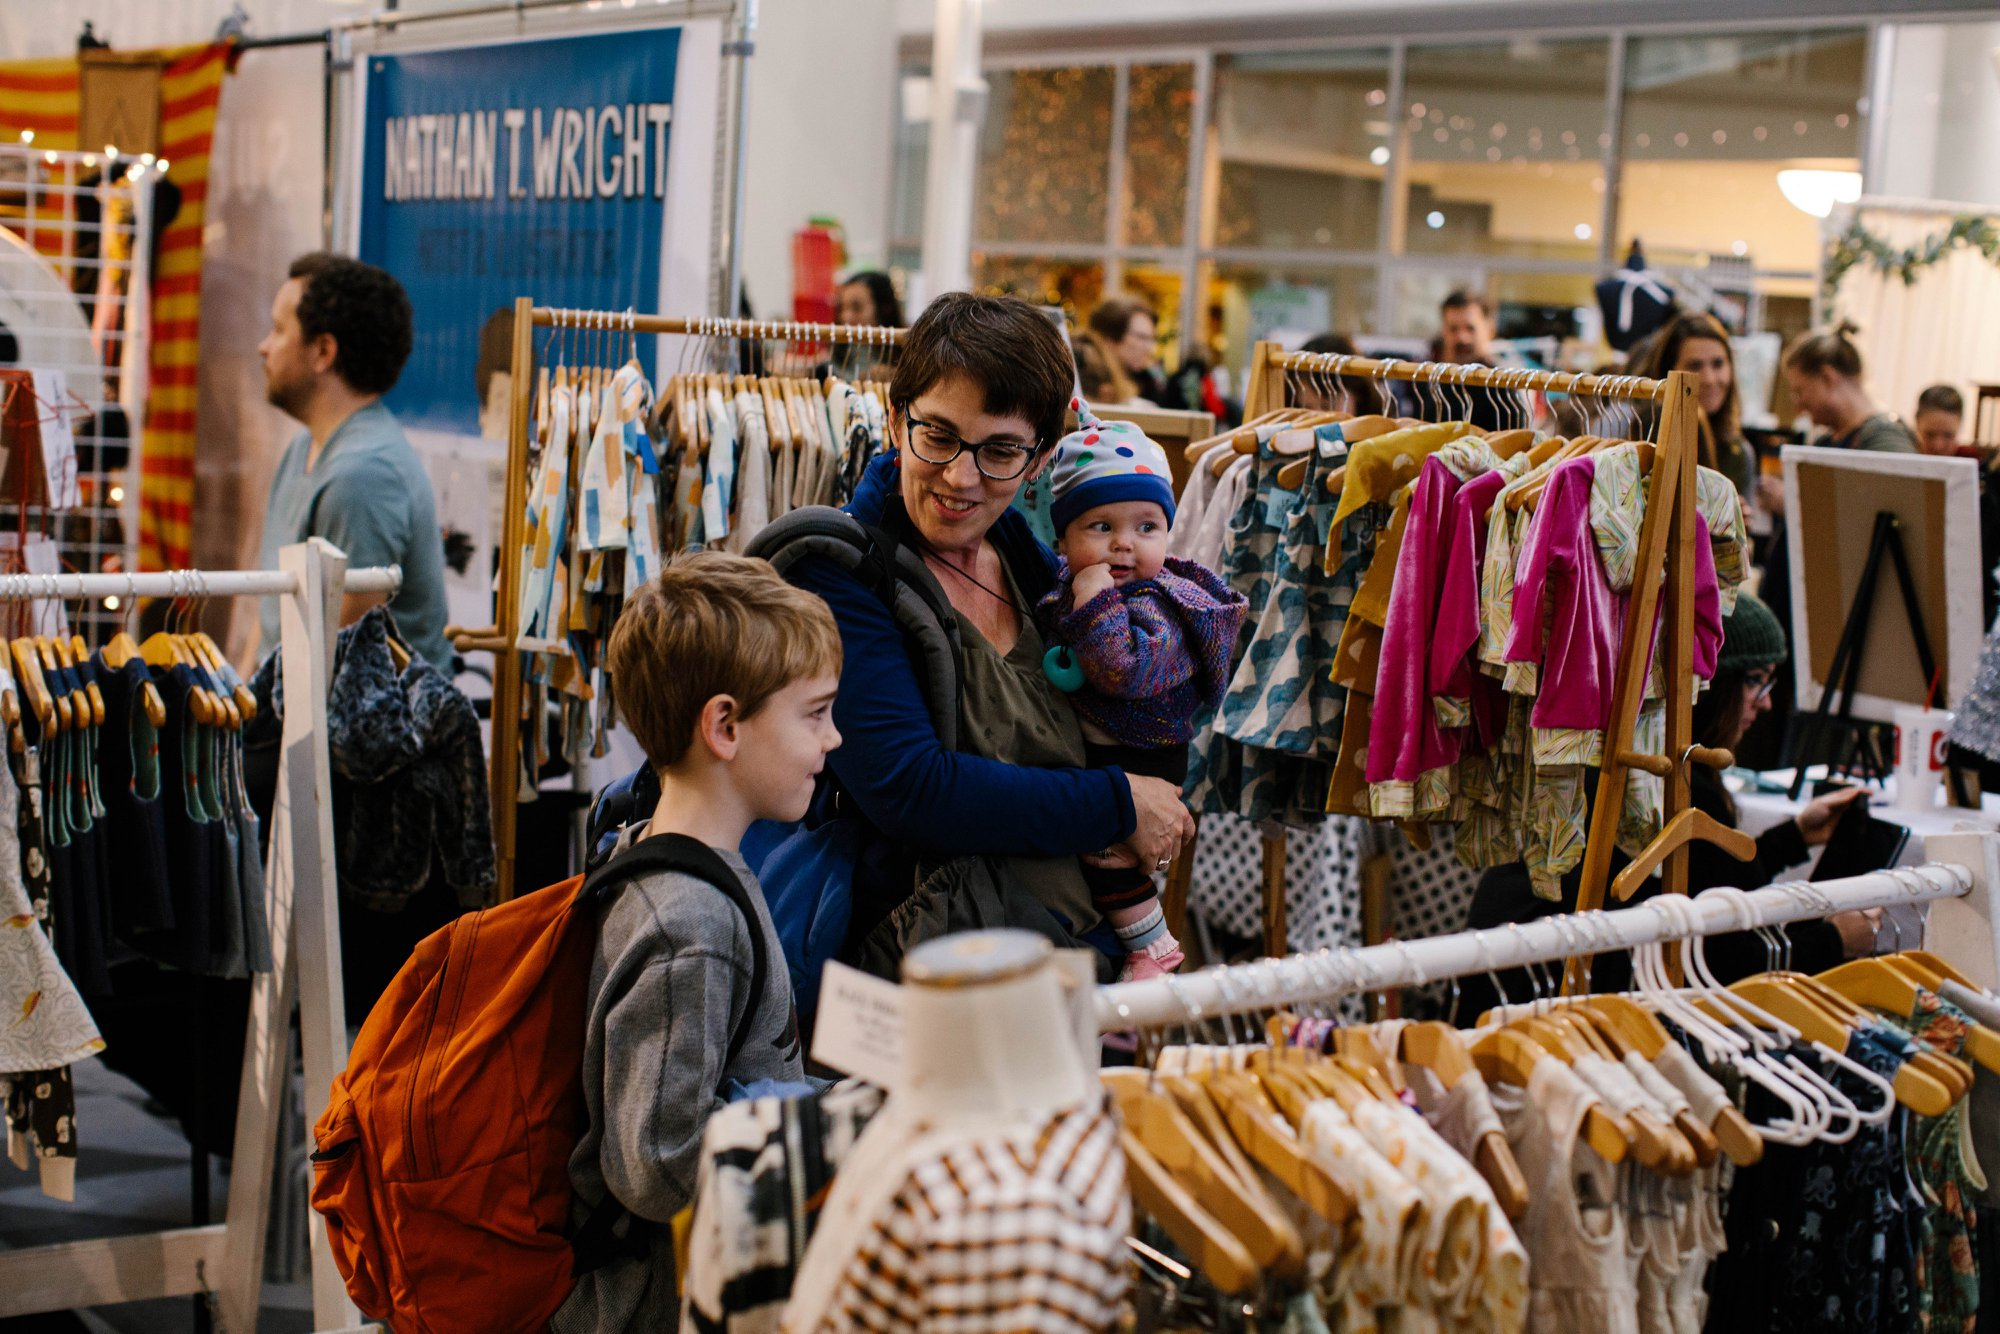 A family standing in front of a children's clothing rack.